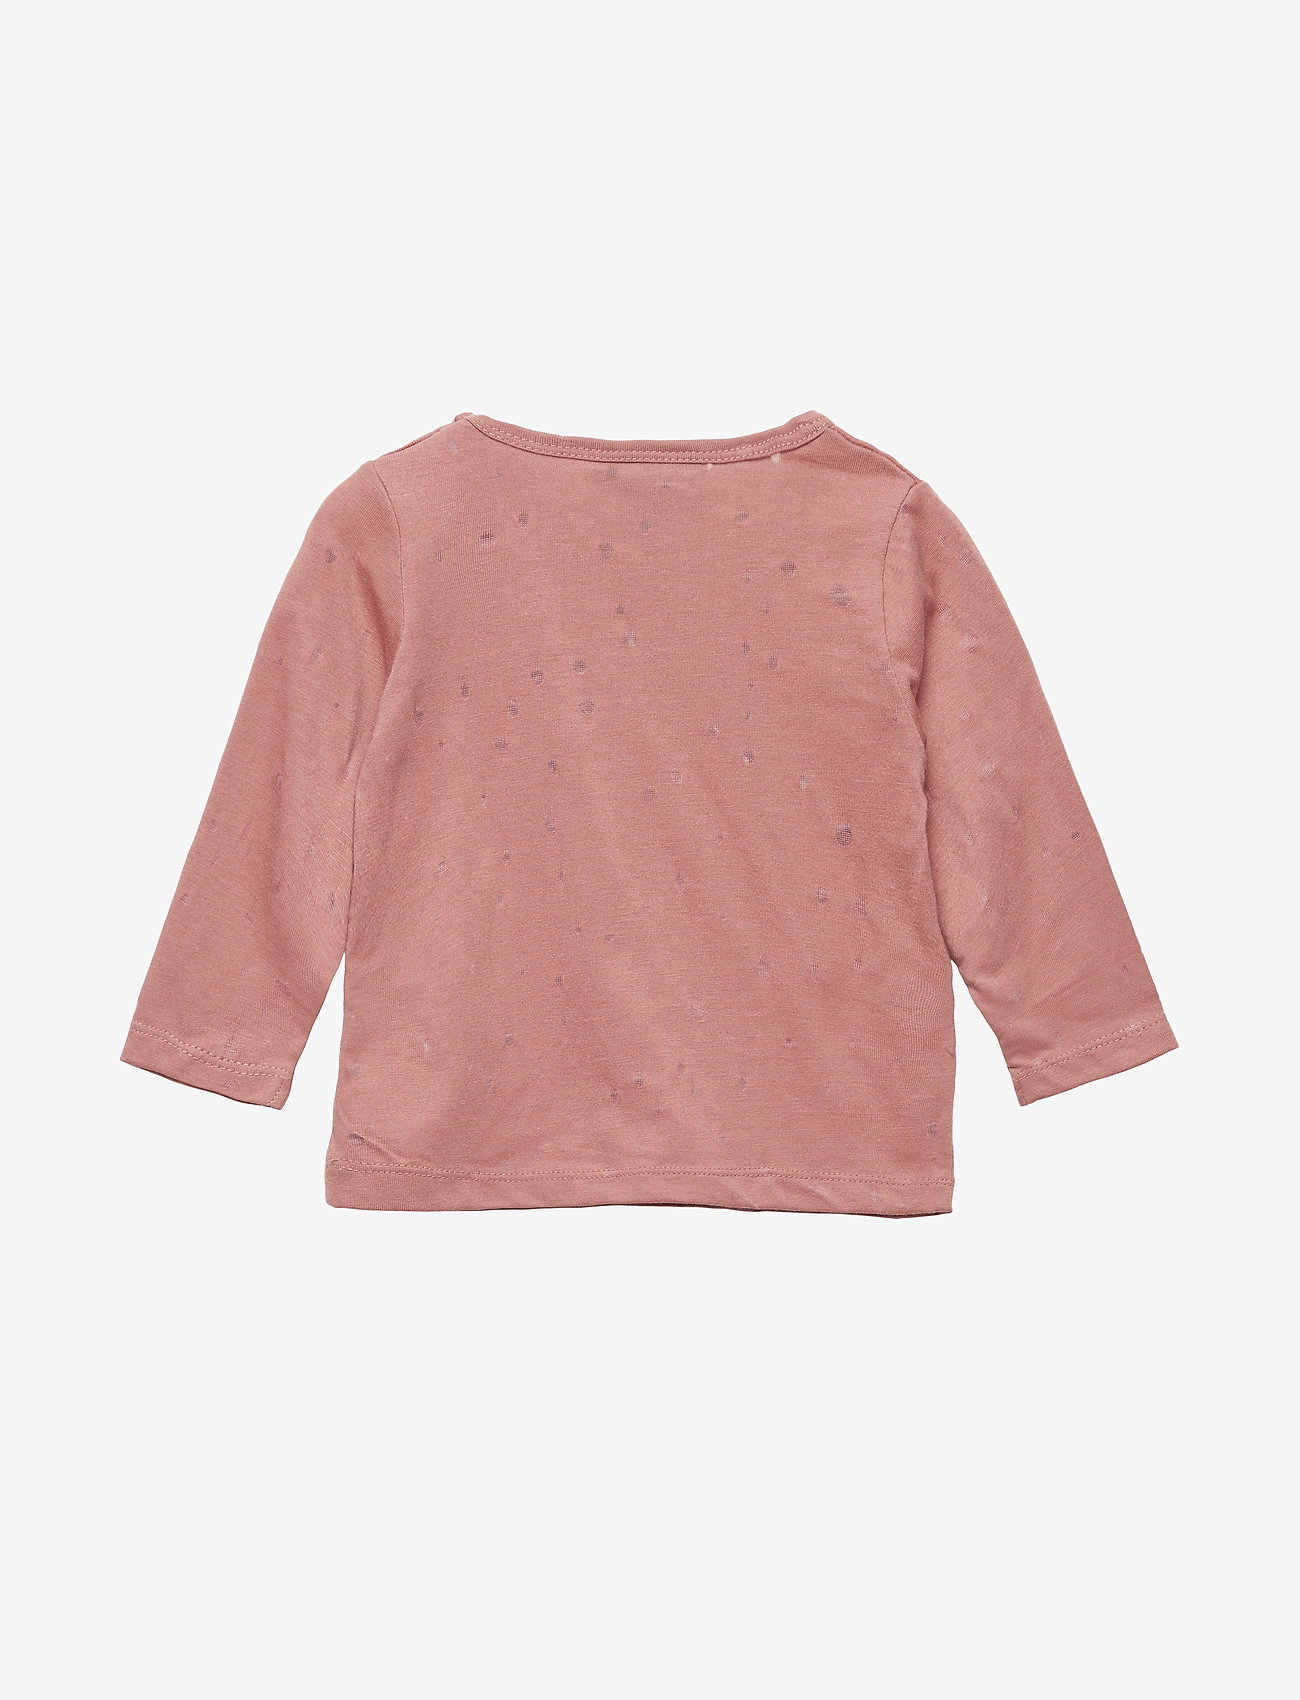 Petit By Sofie Schnoor T-shirt Long Sleeve - Överdelar Dusty Rose